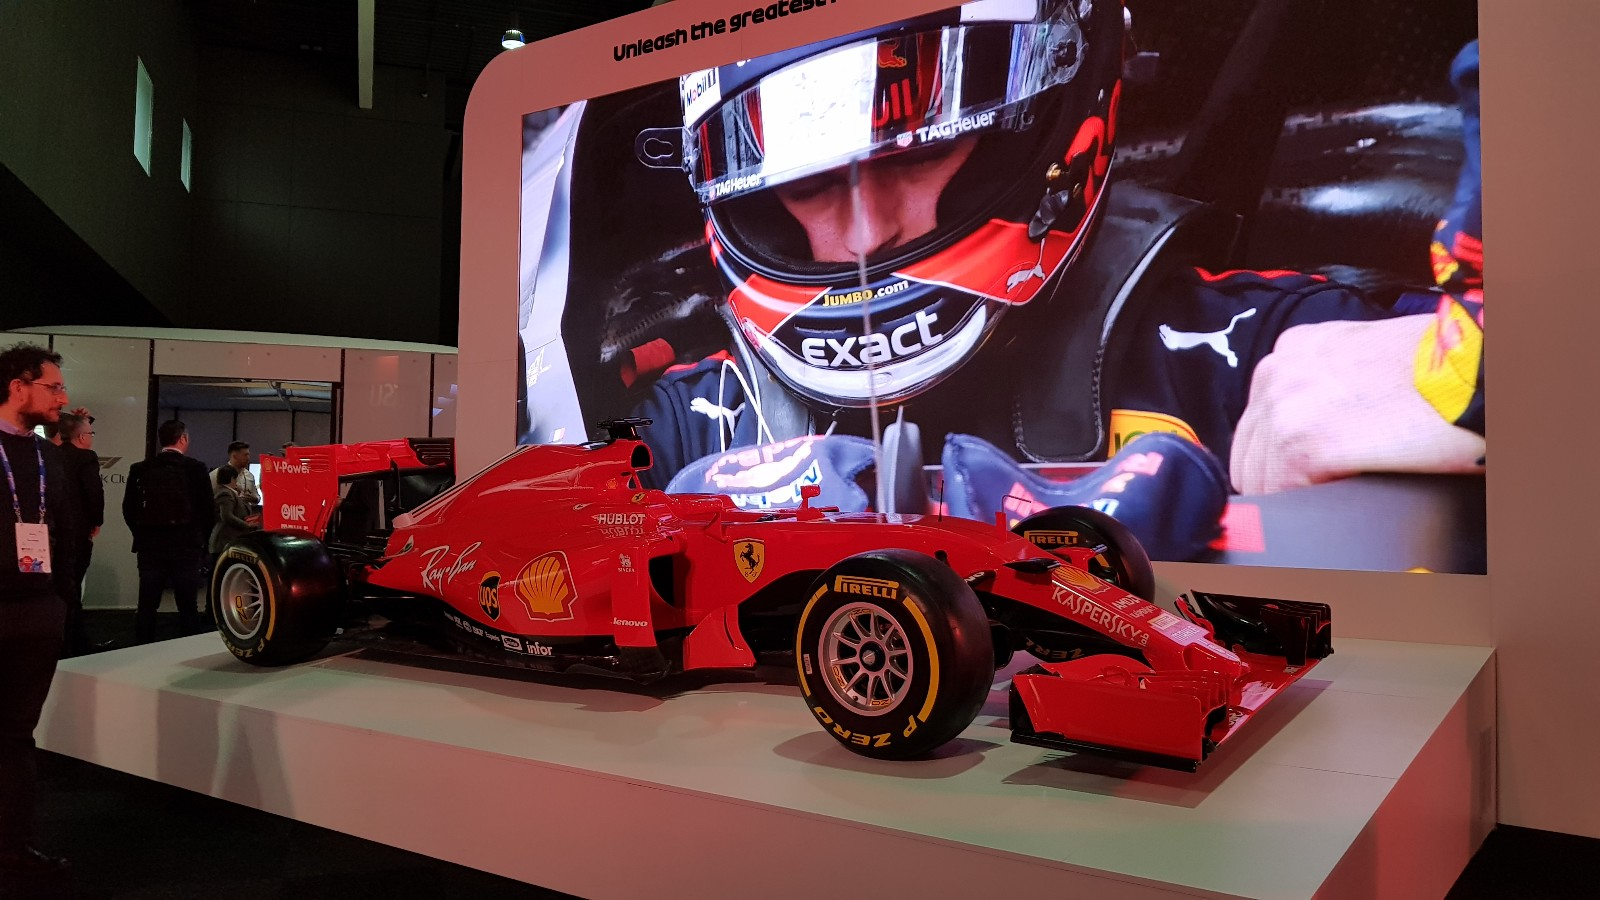 F1 Streaming Service Pegged For H1 2018 Vod Content Motorburn